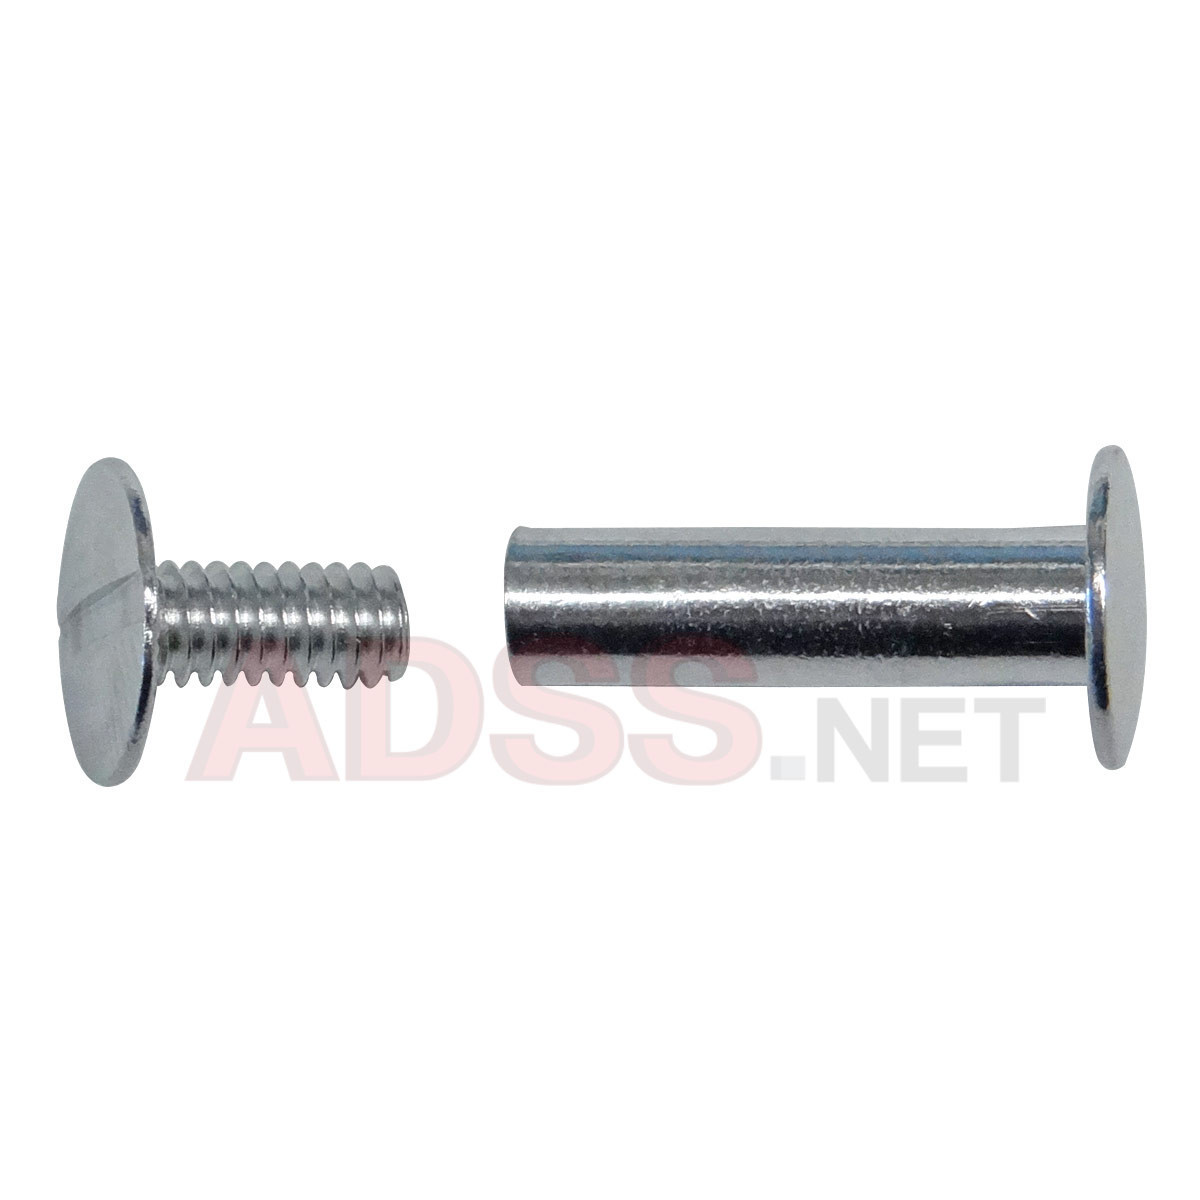 "3/4"" Aluminum Screw Posts <font color=d9821b><b>(20 Sets)</b></font>"